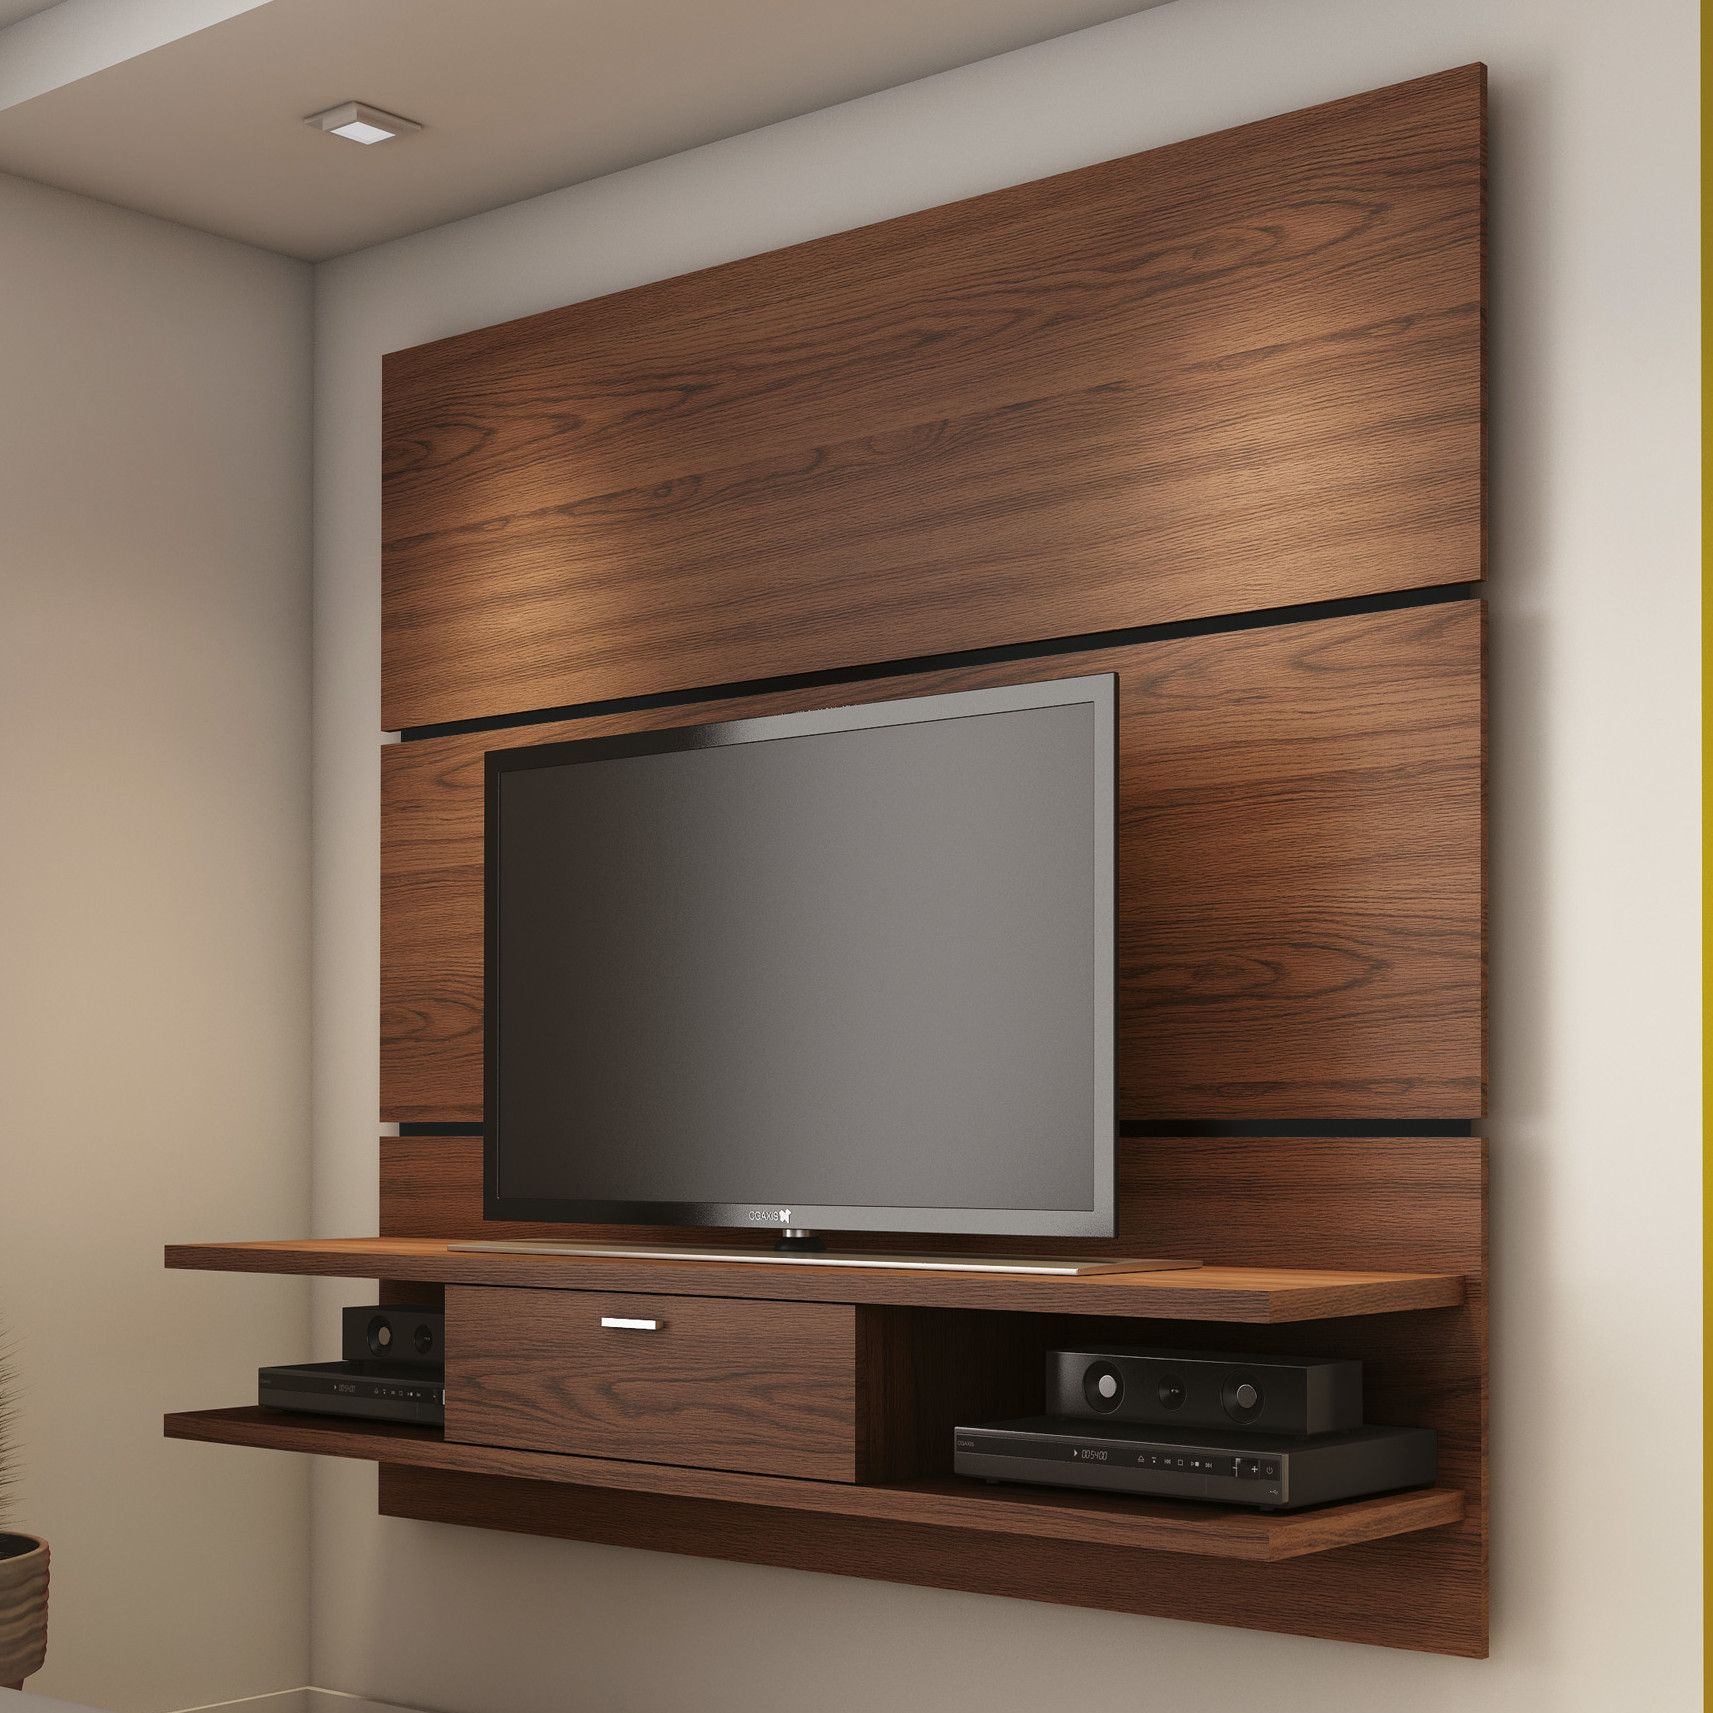 Wooden Wall Tv Mount Small Bedroom Tv Unit Wooden Wall Mounted Tv Stand For